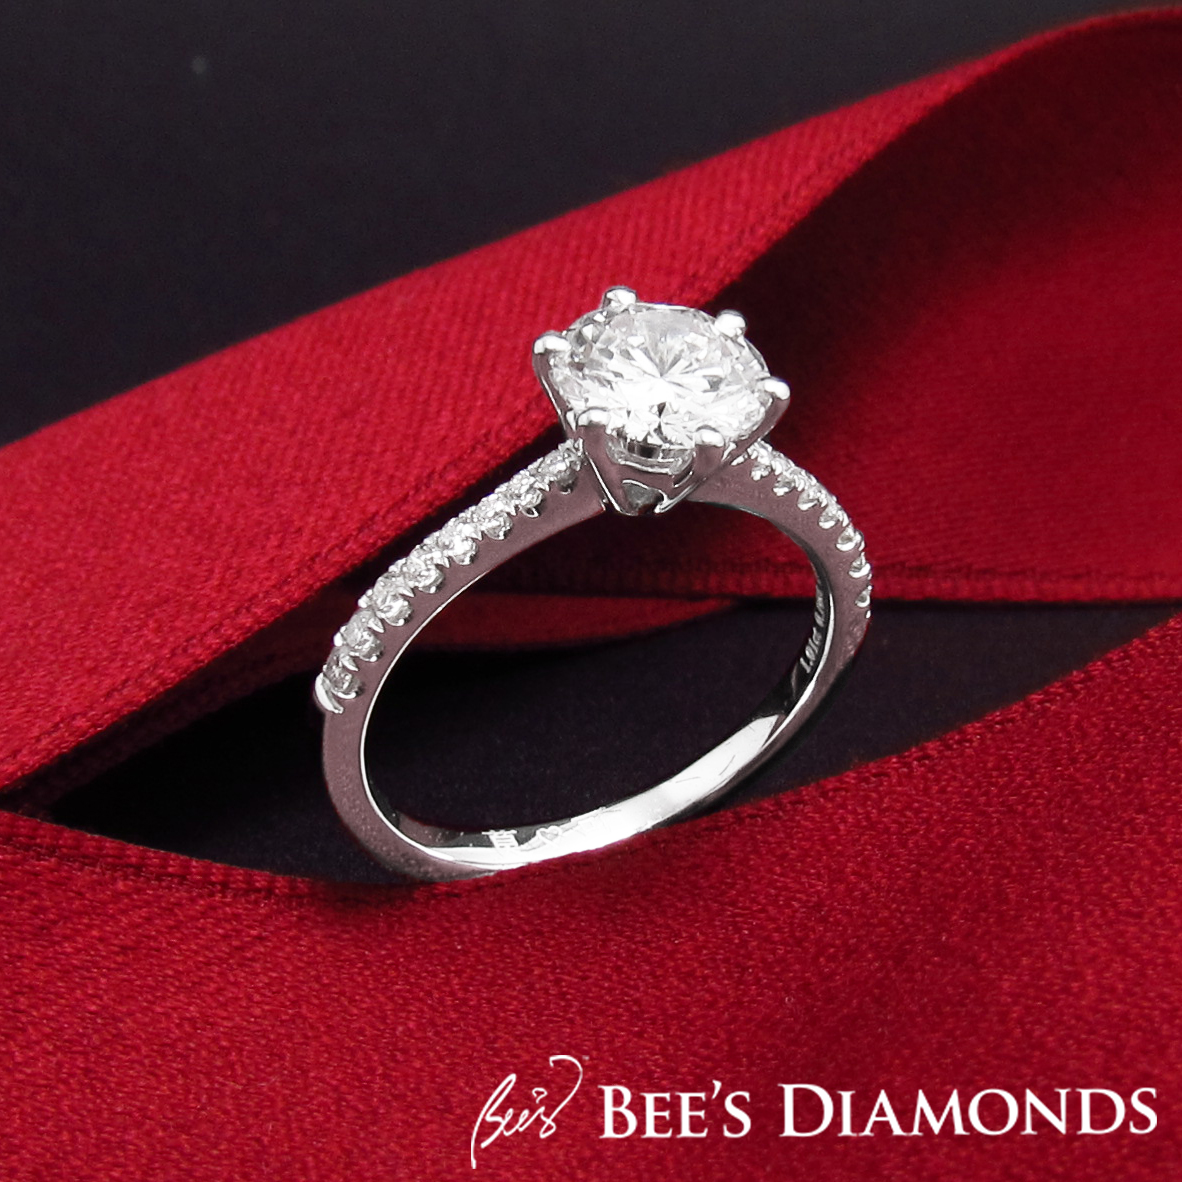 Solitaire diamond ring with decreasing size of small diamonds on bands